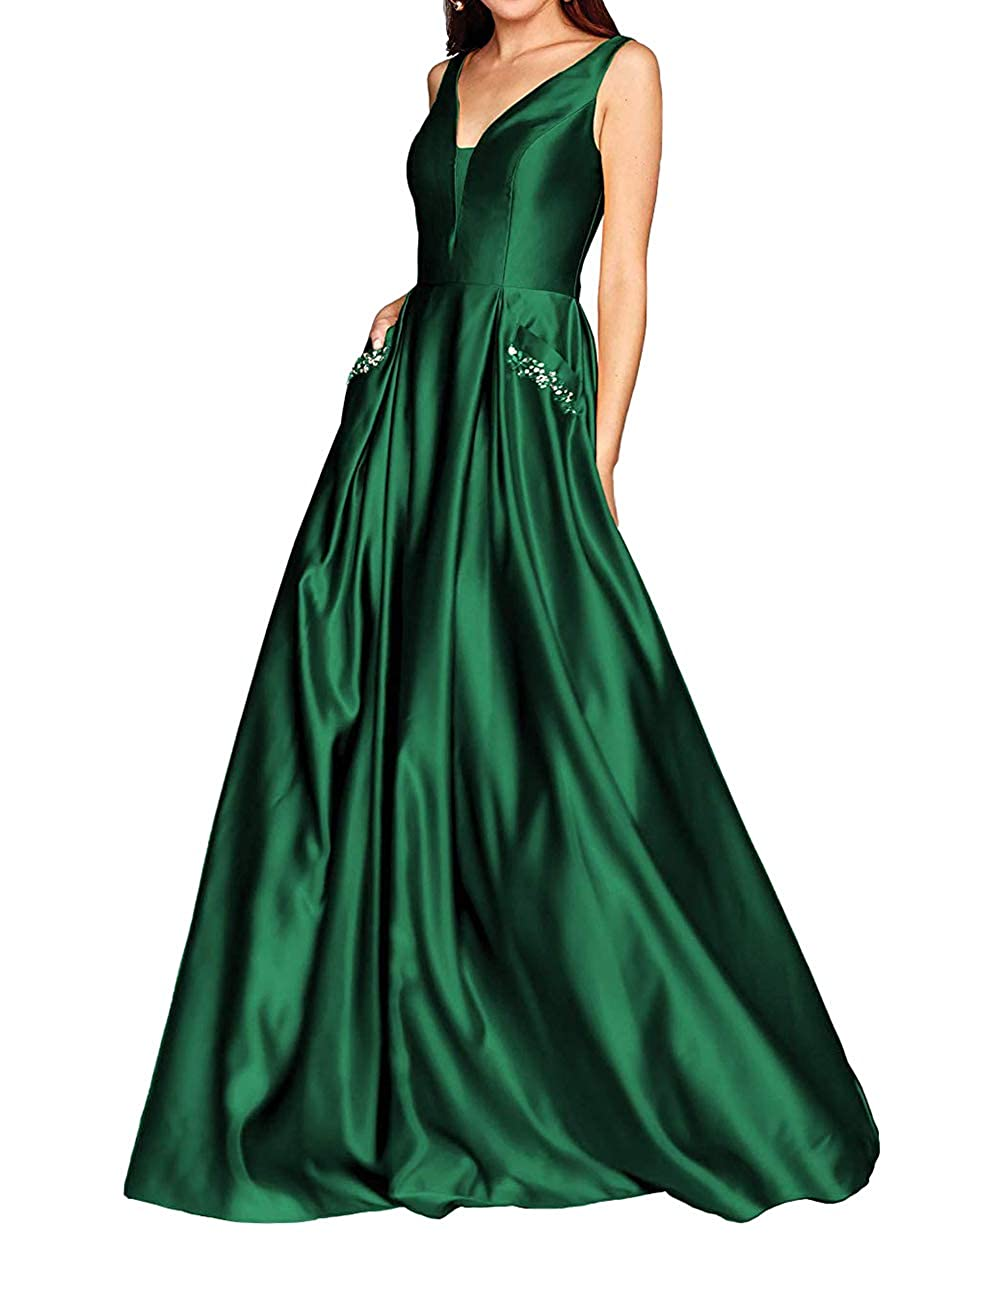 Dark Green JAEDEN Prom Dresses Long Evening Gowns Formal V Neck Prom Dress Sleeveless Evening Dresses Party Gown with Pocket